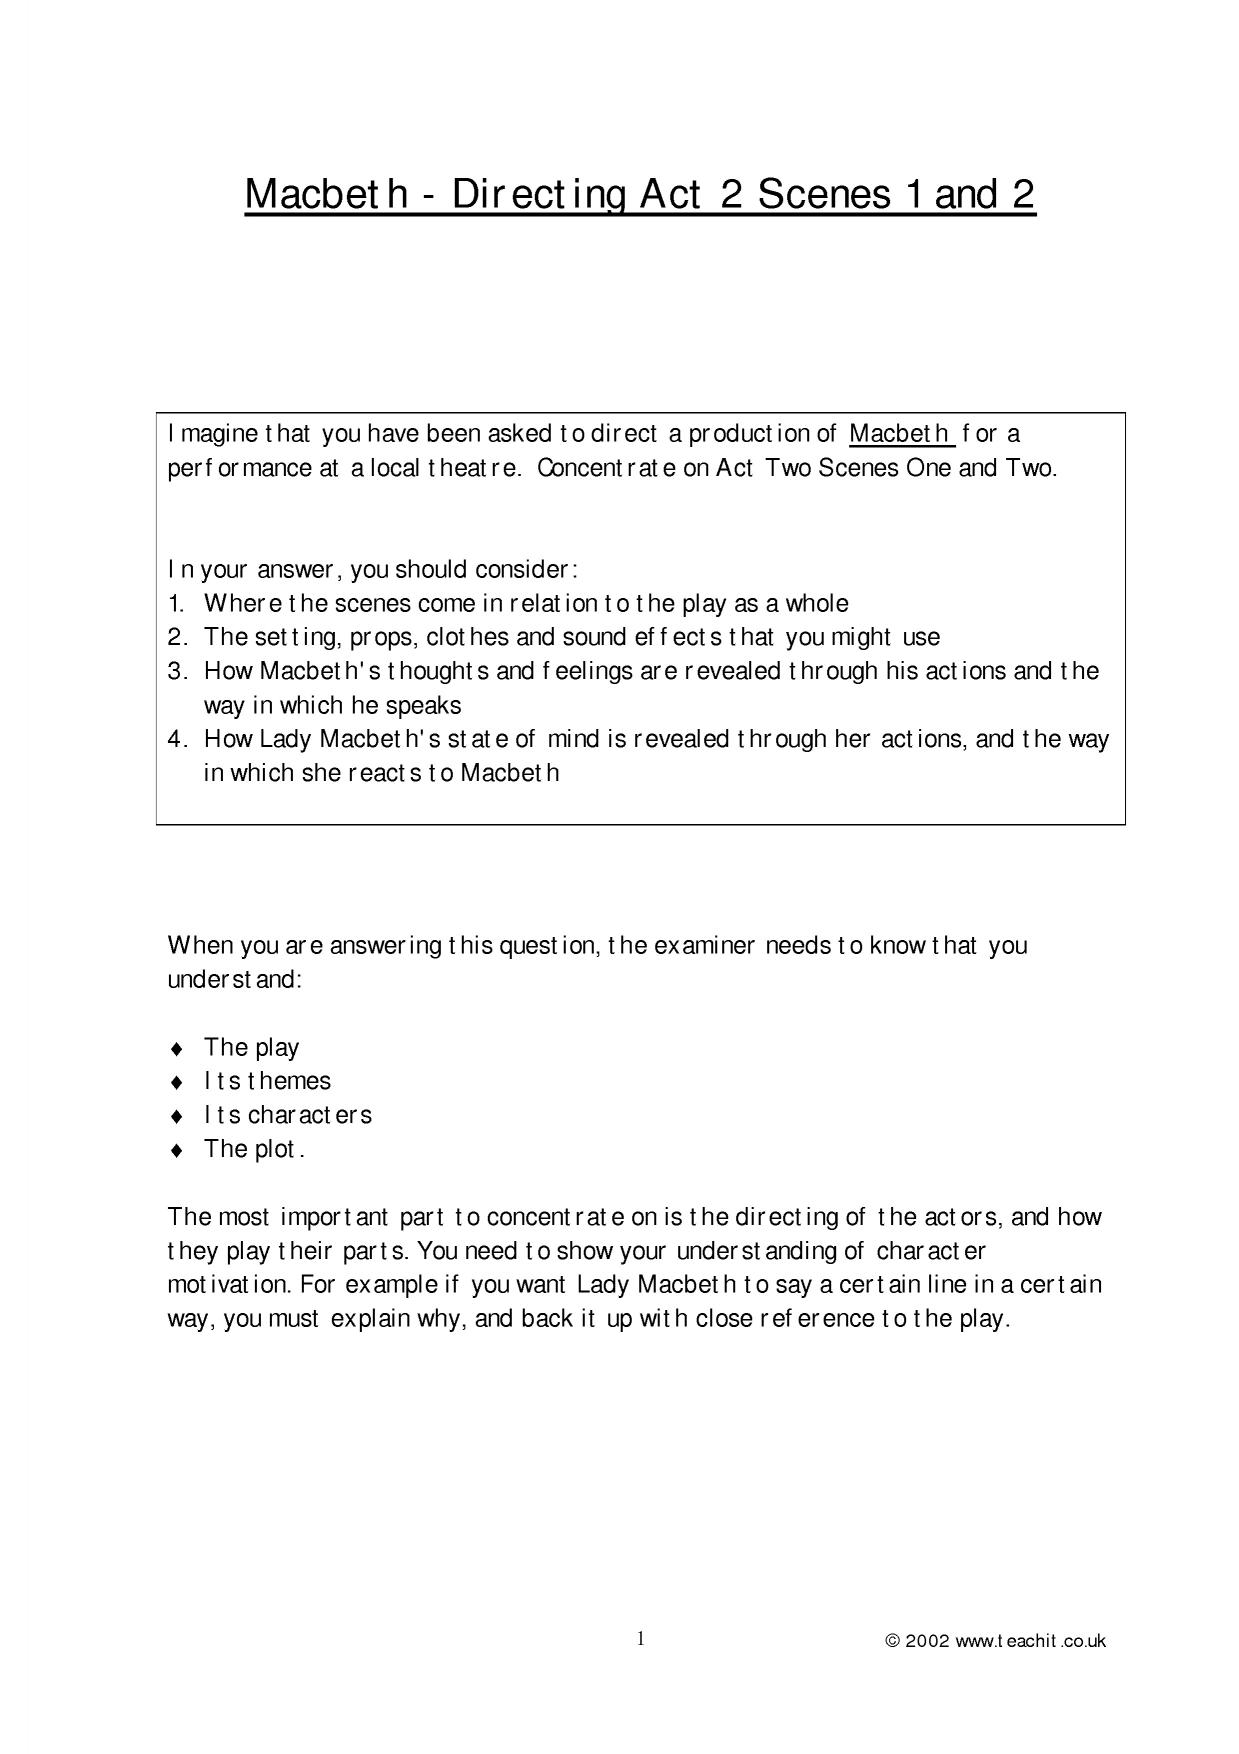 macbeth character analysis essay macbeth essay lady macbeth  relationship between macbeth and lady macbeth essay plan relationship between macbeth and lady macbeth essay plan